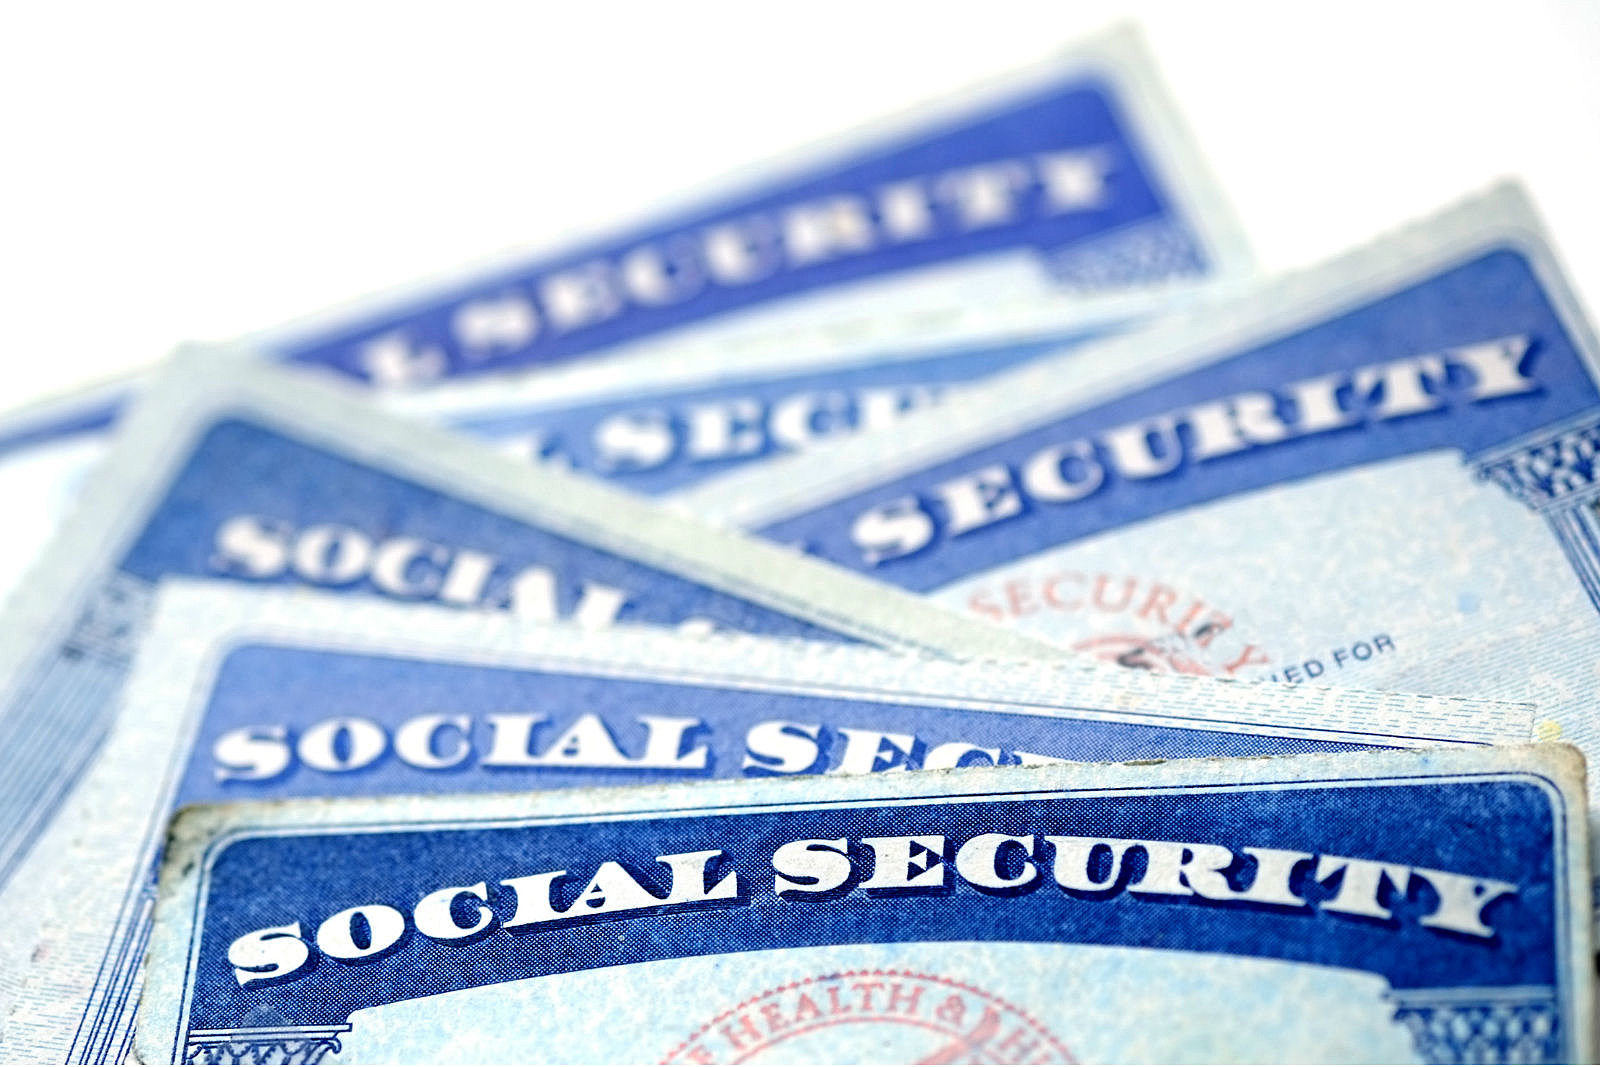 Dealing with Dementia and filing for Social Security